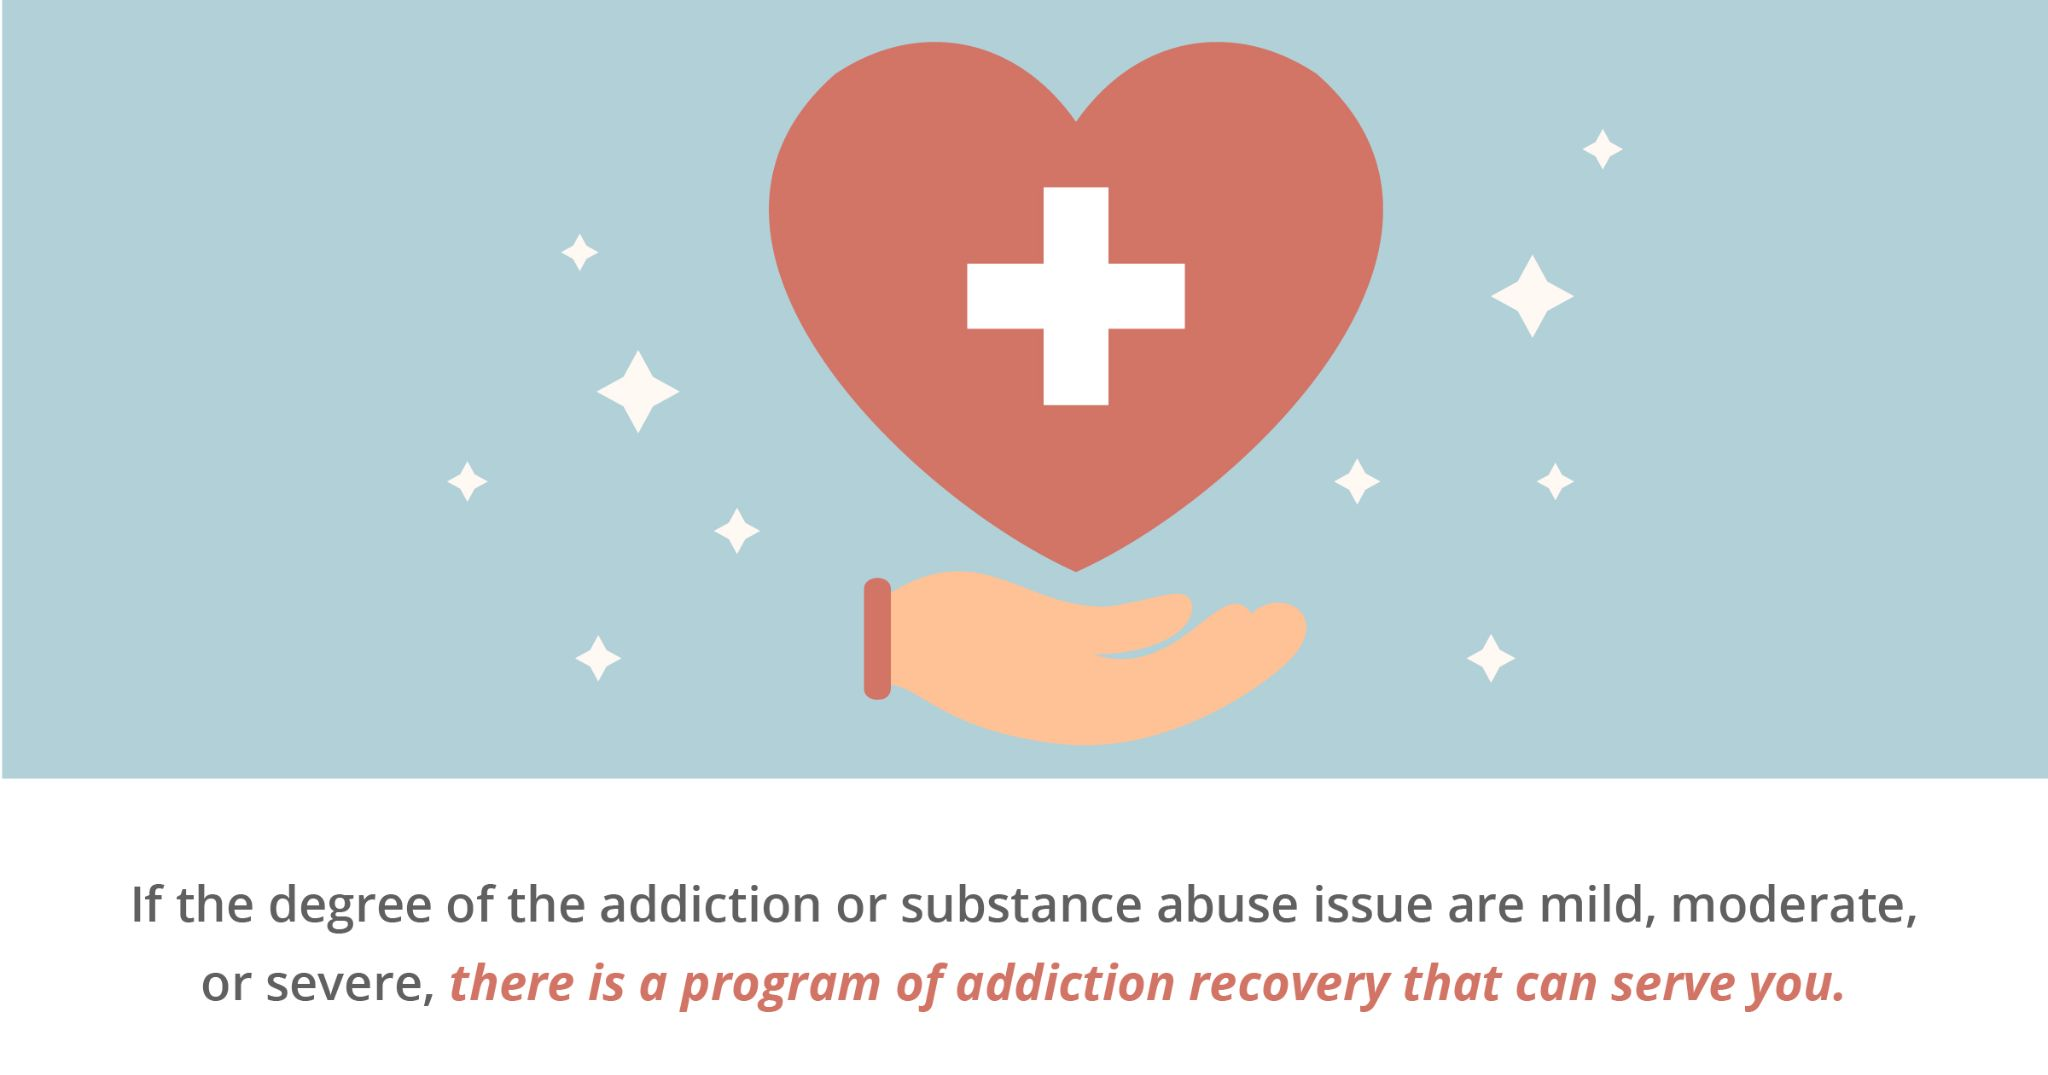 if the degree of the addiction or substance abuse issue are mild, moderate, or severed, there is a program of addiction recovery that can serve you.